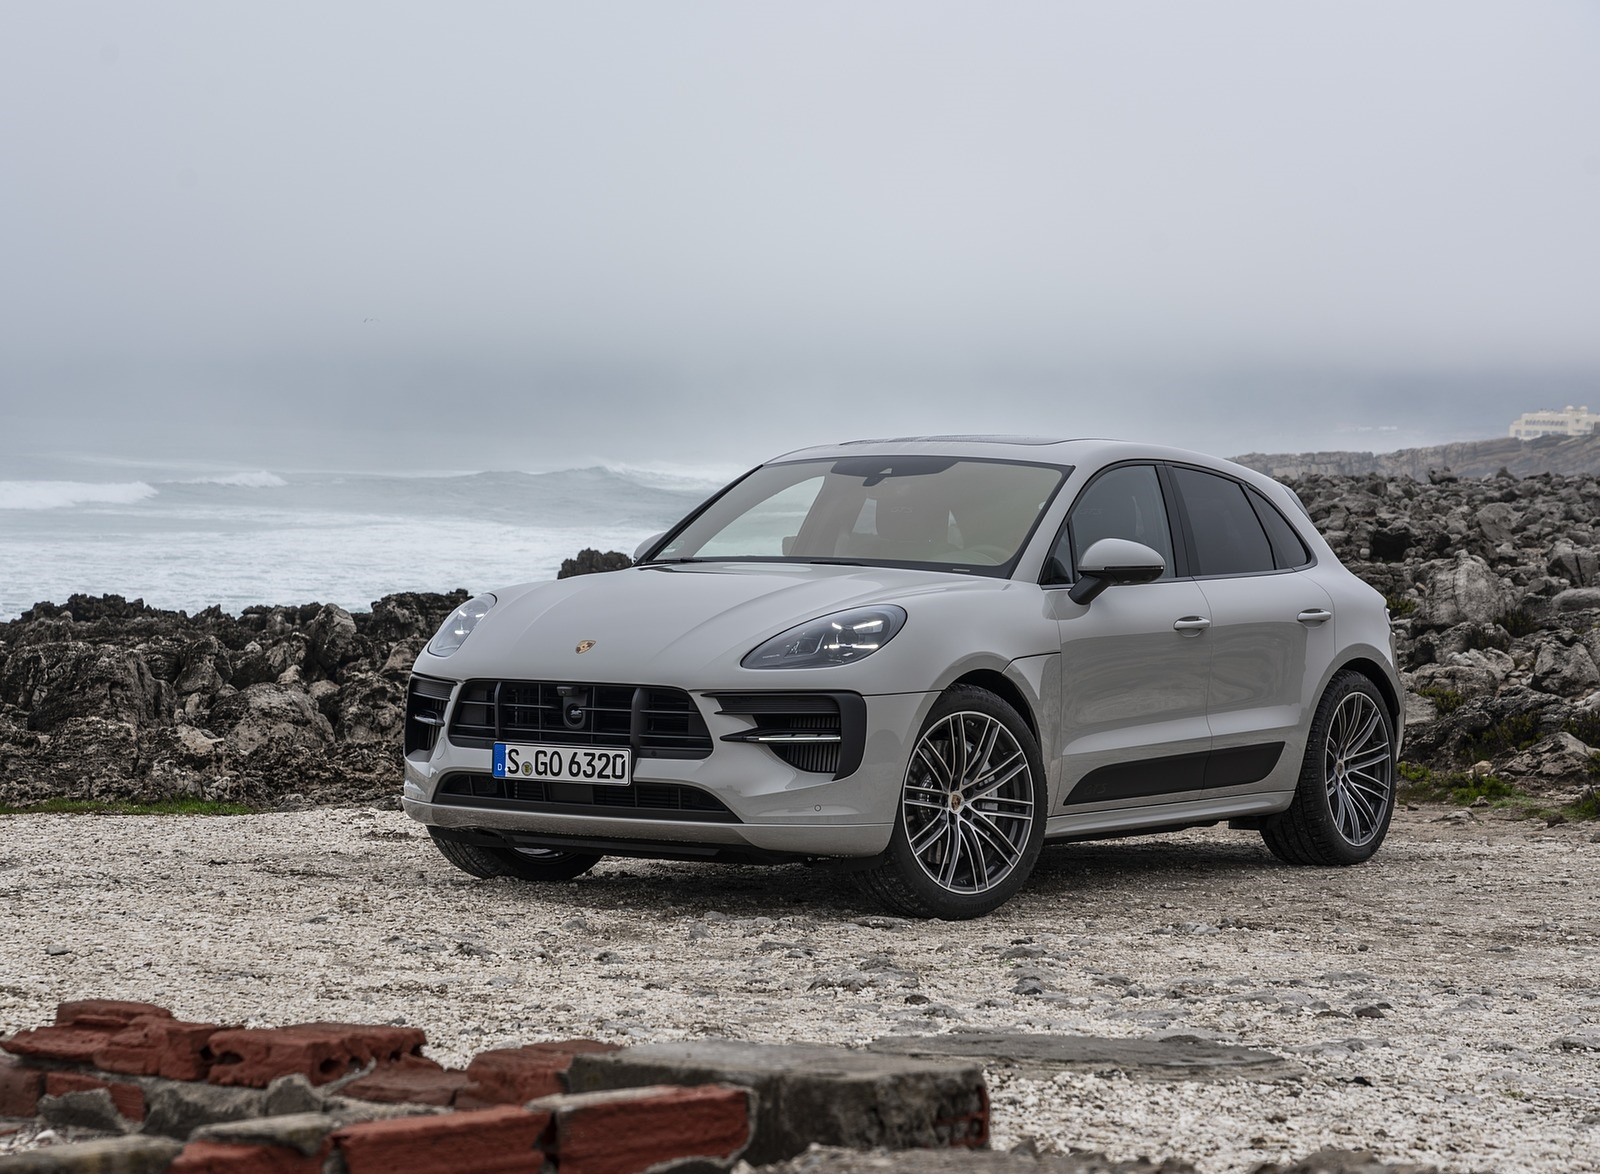 2020 Porsche Macan Gts Front Three Quarter Wallpapers Porsche Macan Gts 2020 1600x1174 Download Hd Wallpaper Wallpapertip